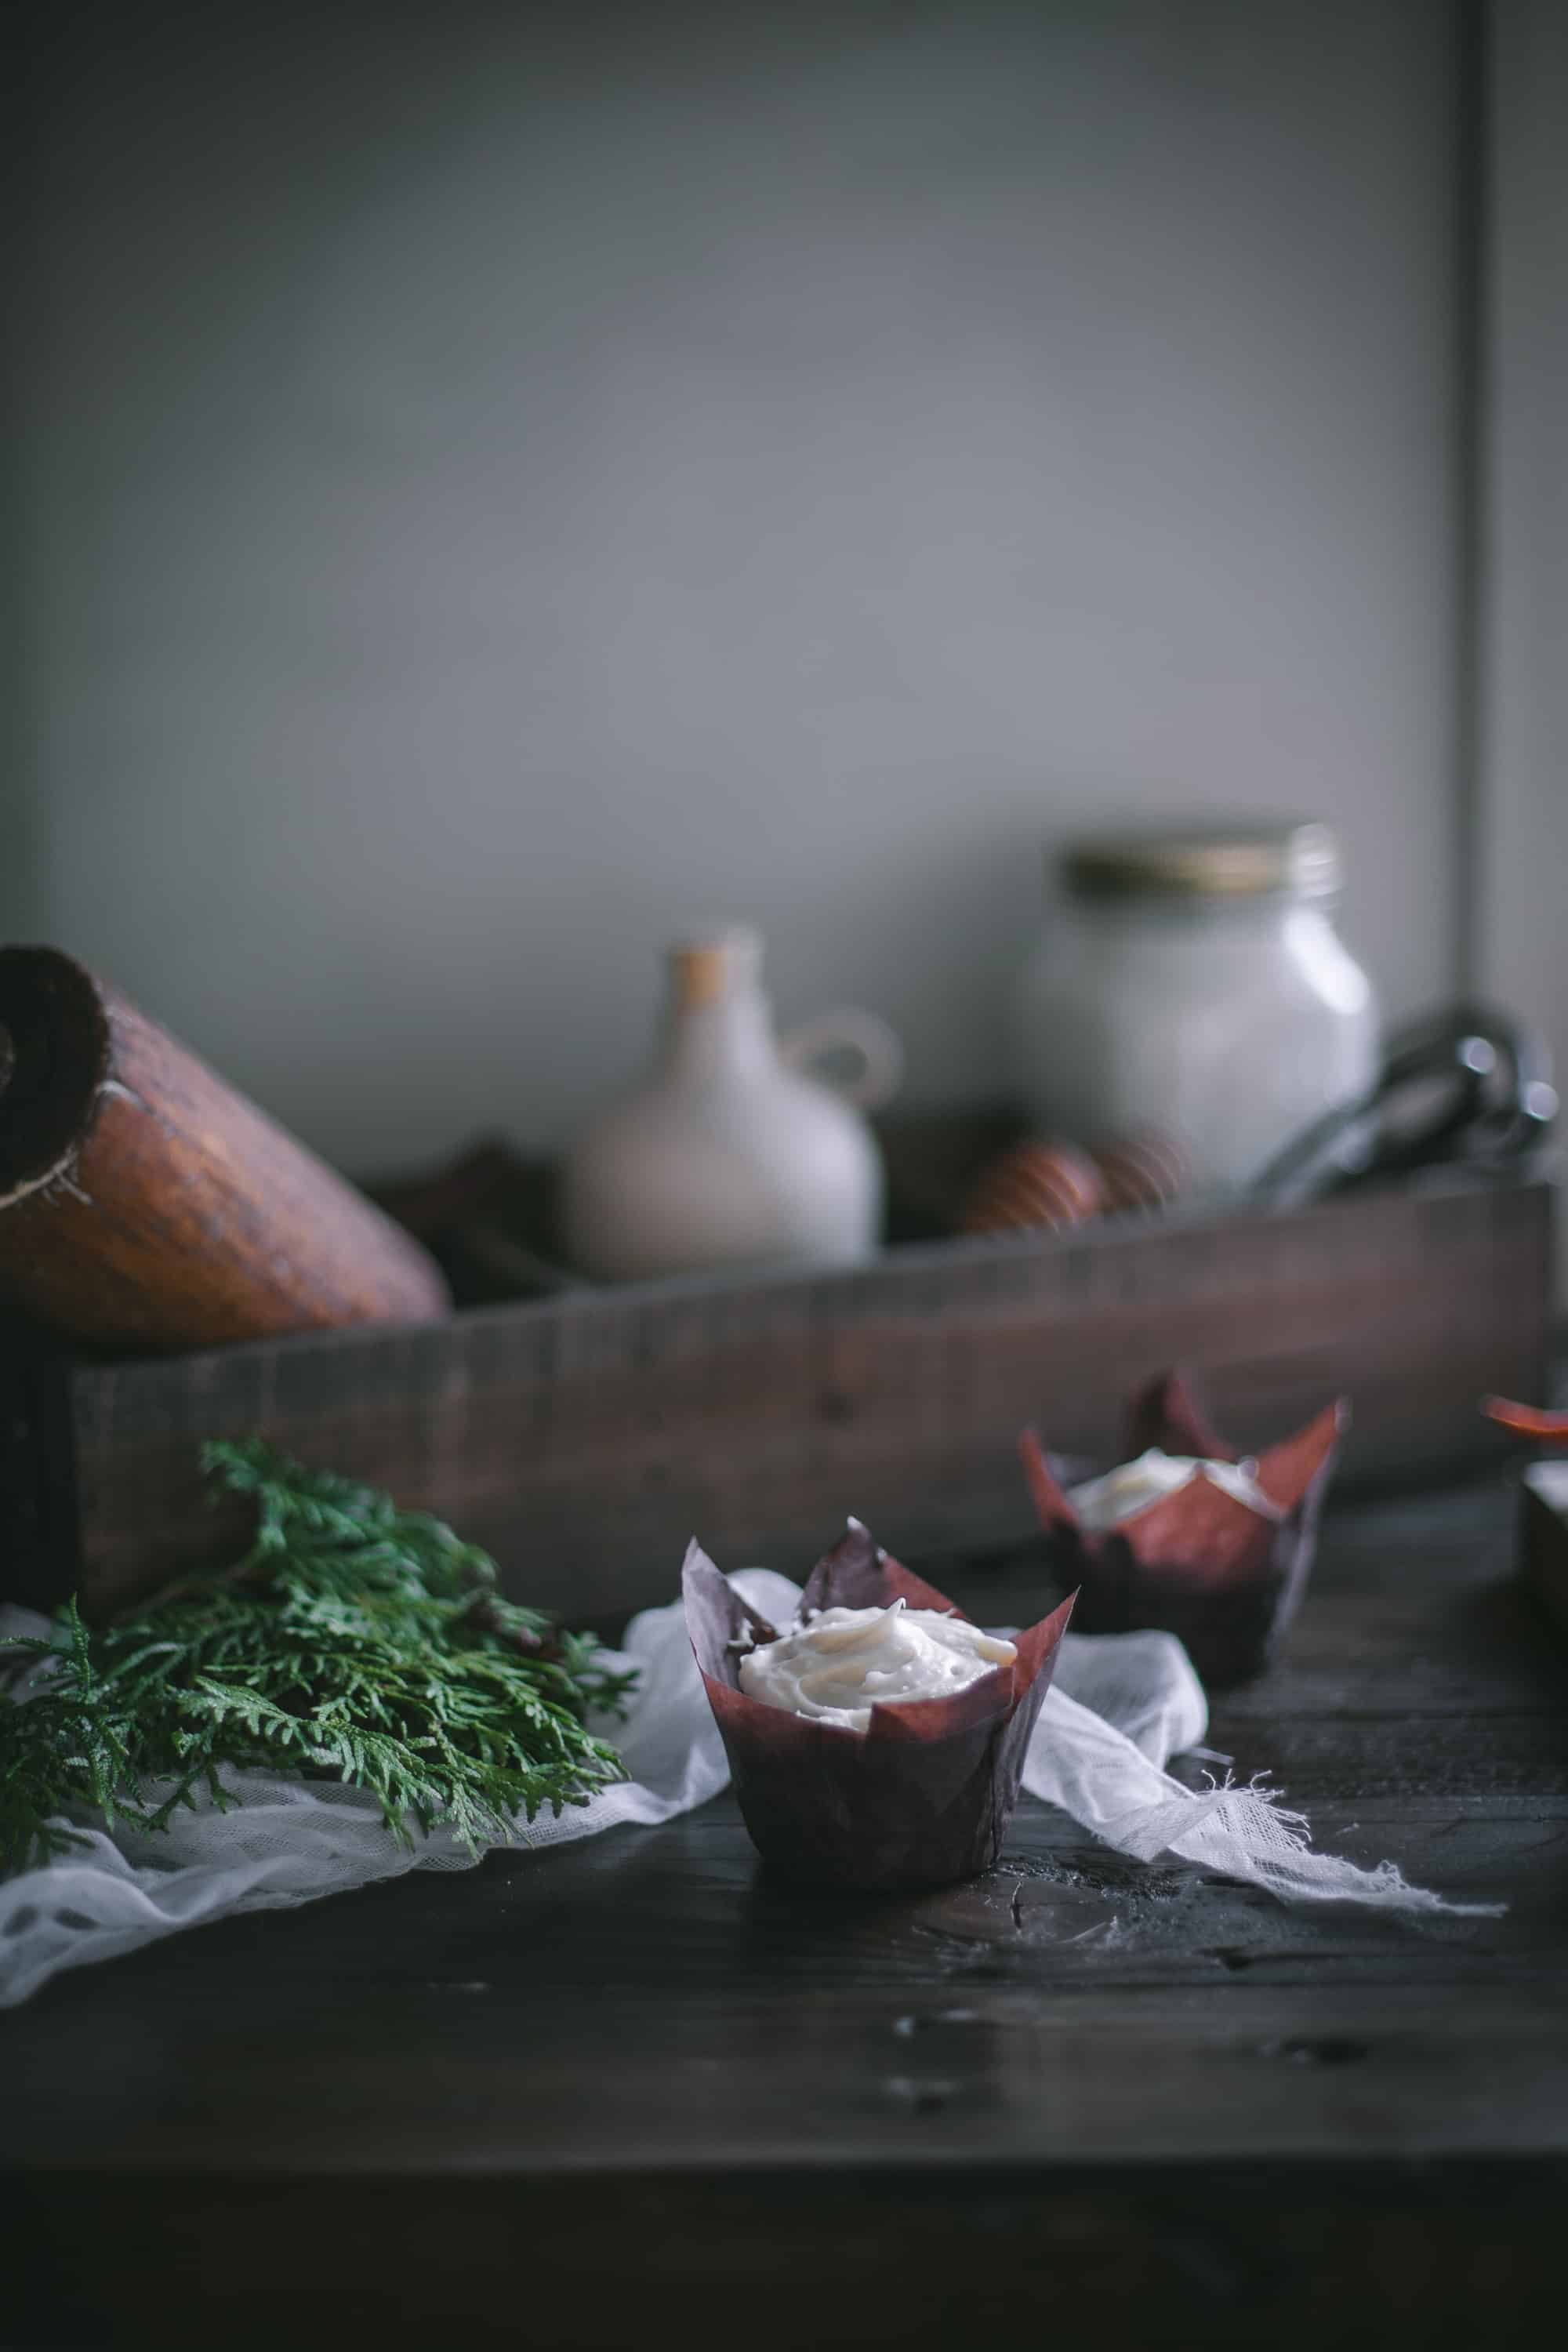 Carrot Cake Citrus Cupcakes With Cream Cheese Frosting by Eva Kosmas Flores